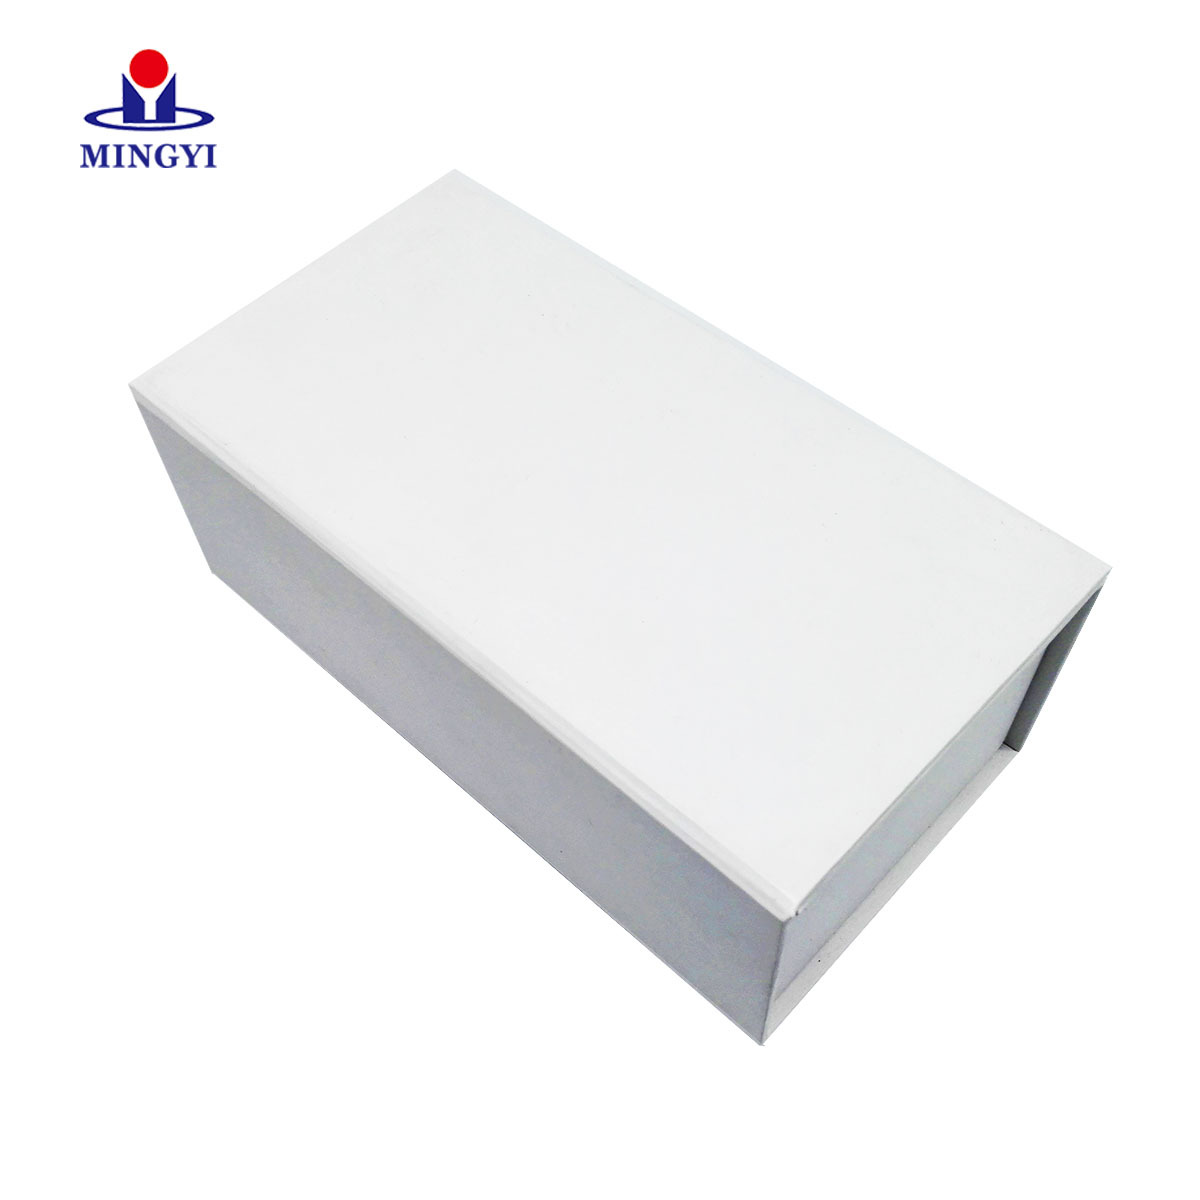 Luxury electronic white recycled box custom white box packaging